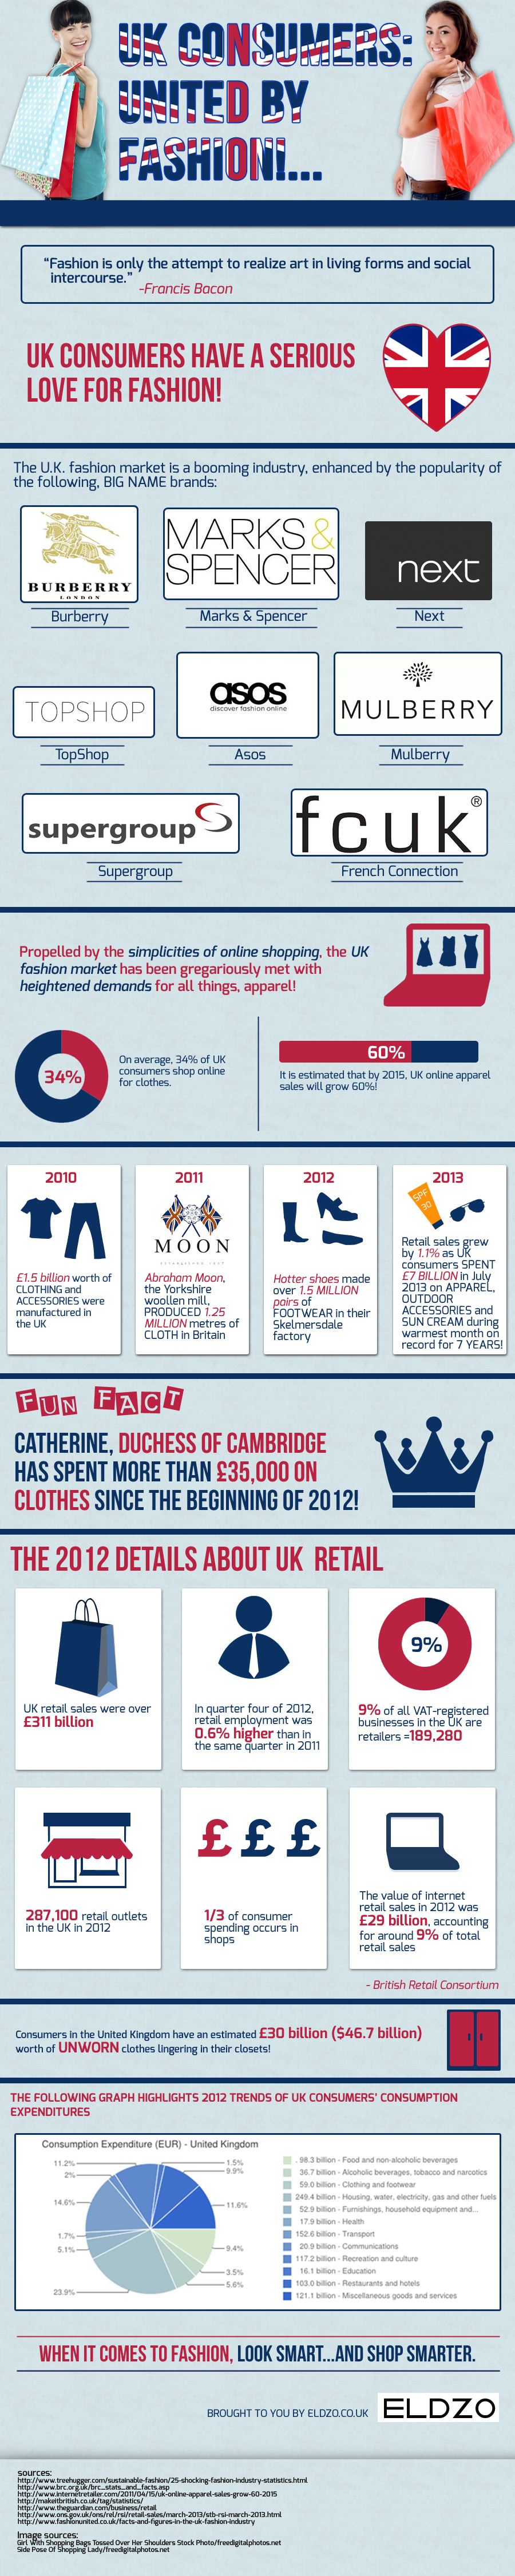 UK Consumers: United By Fashion